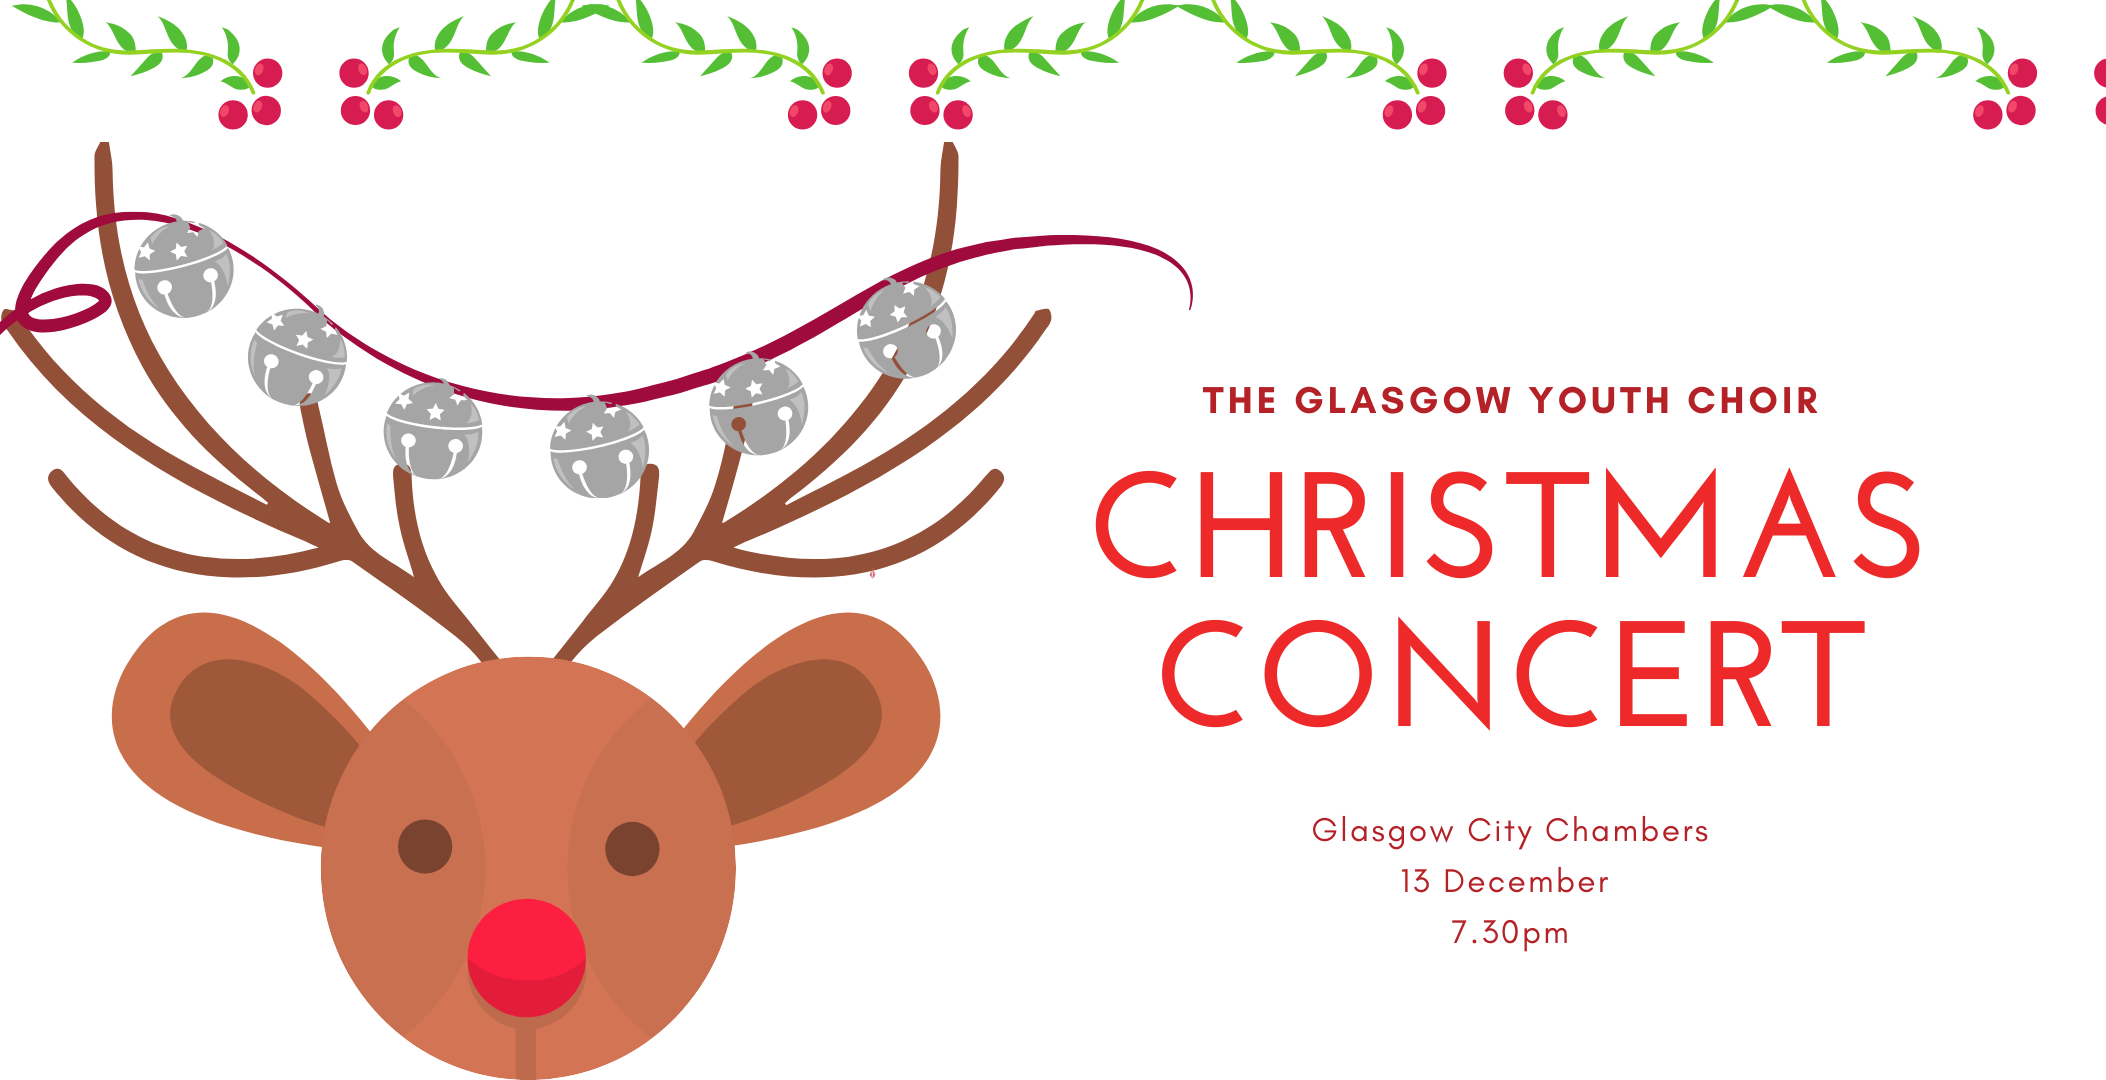 Glasgow Youth Choir Christmas Concert